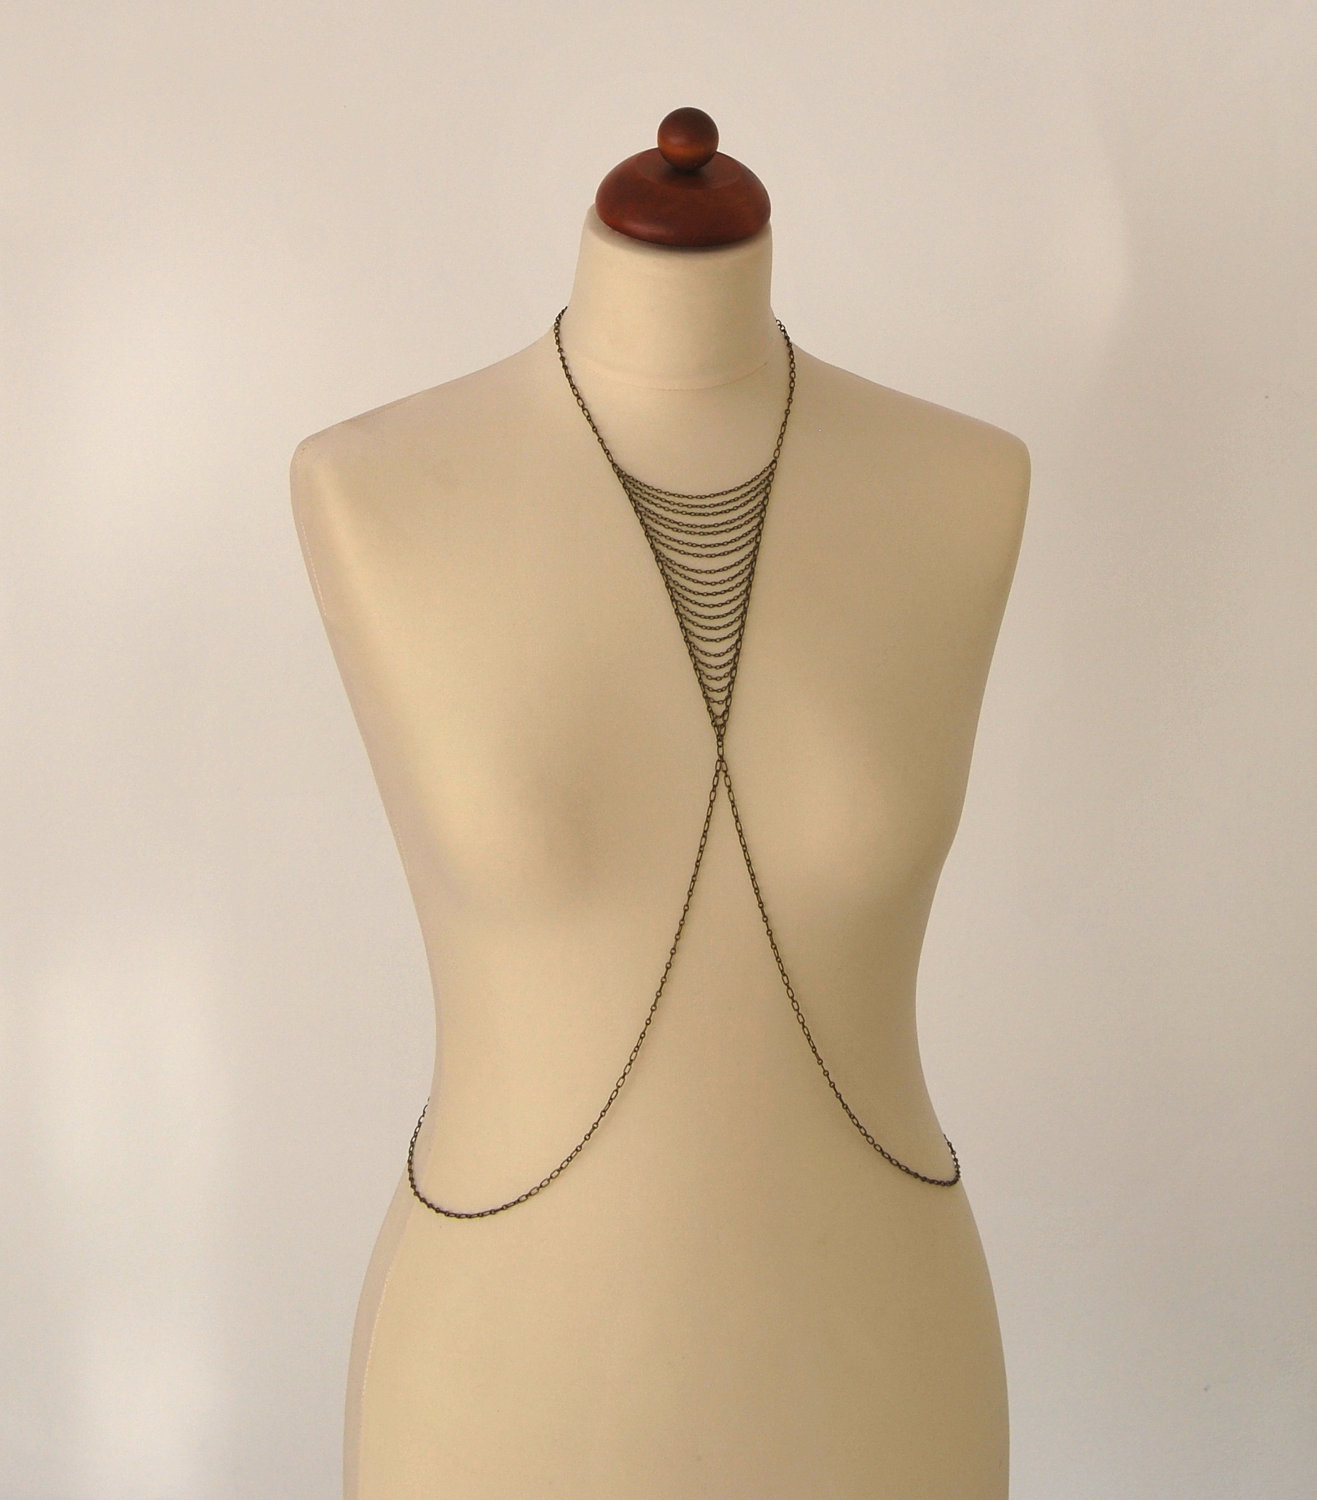 Ariadne no. 3 Body Chain Necklace by hungry Swan